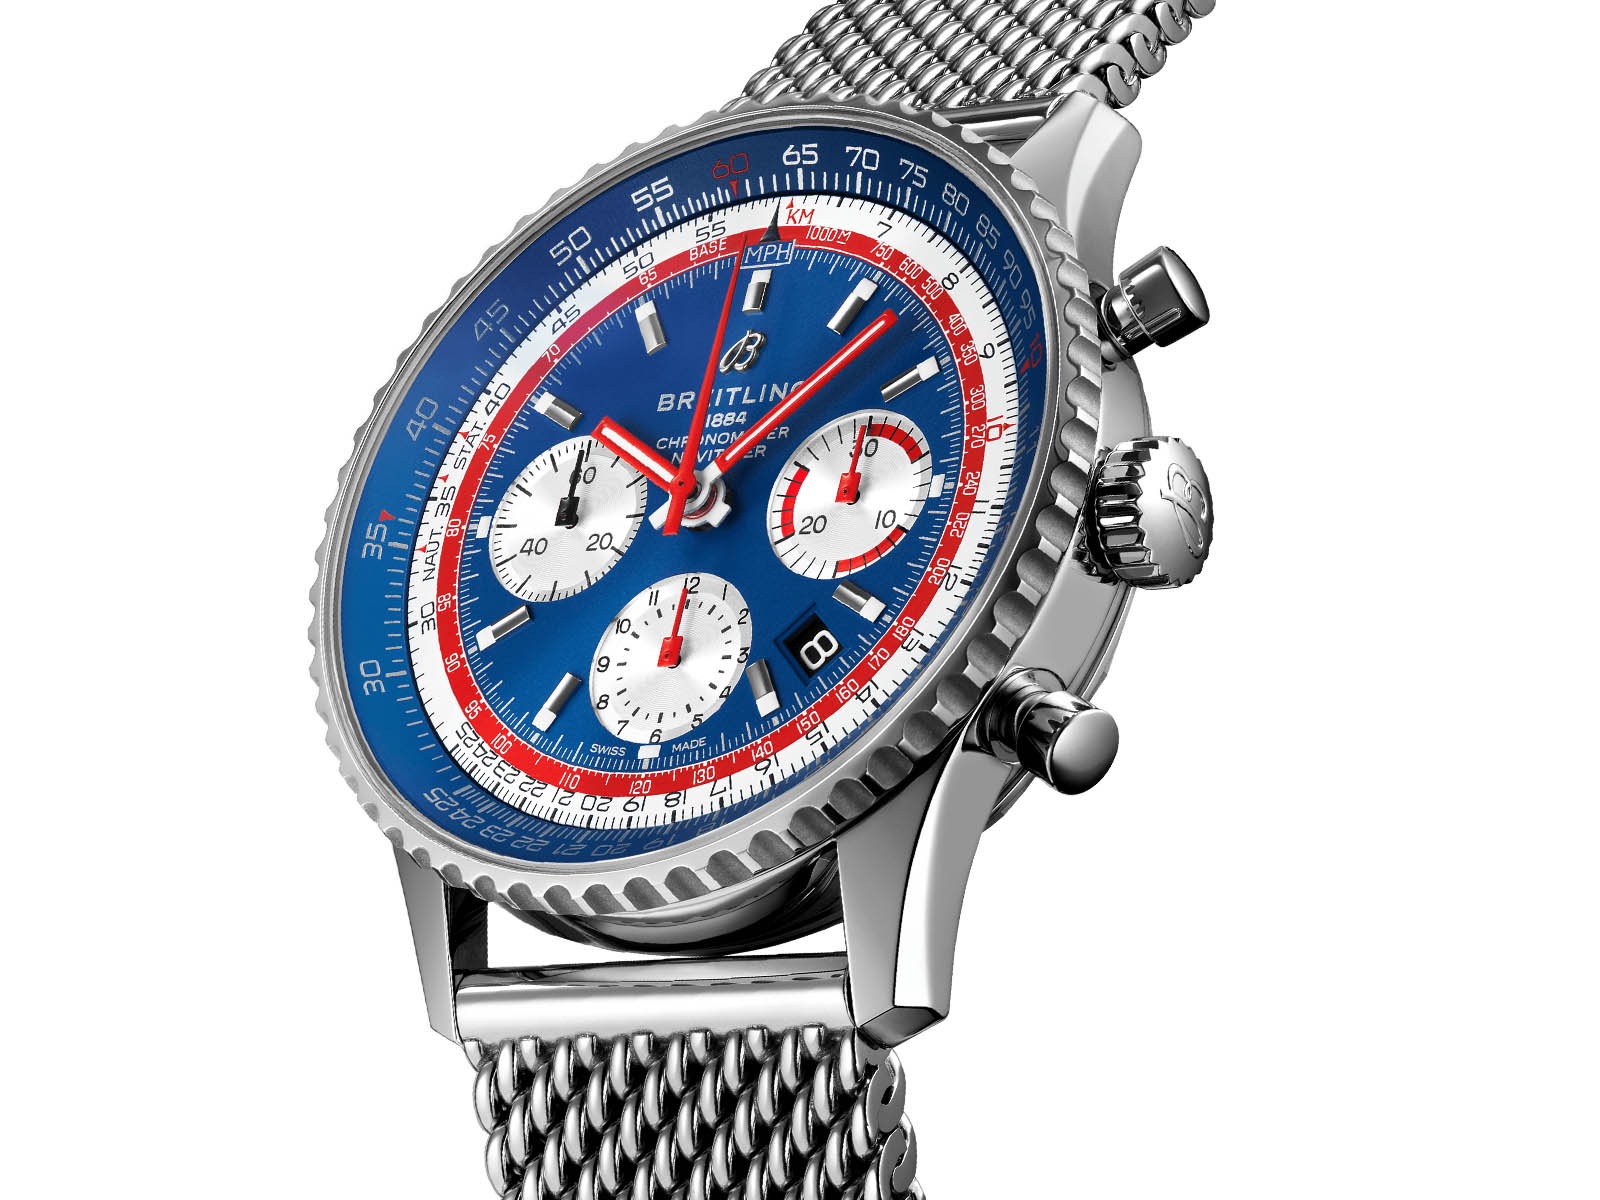 breitling-navitimer-b01-chronograph-43-american-airlines-limited-edition-4.jpg